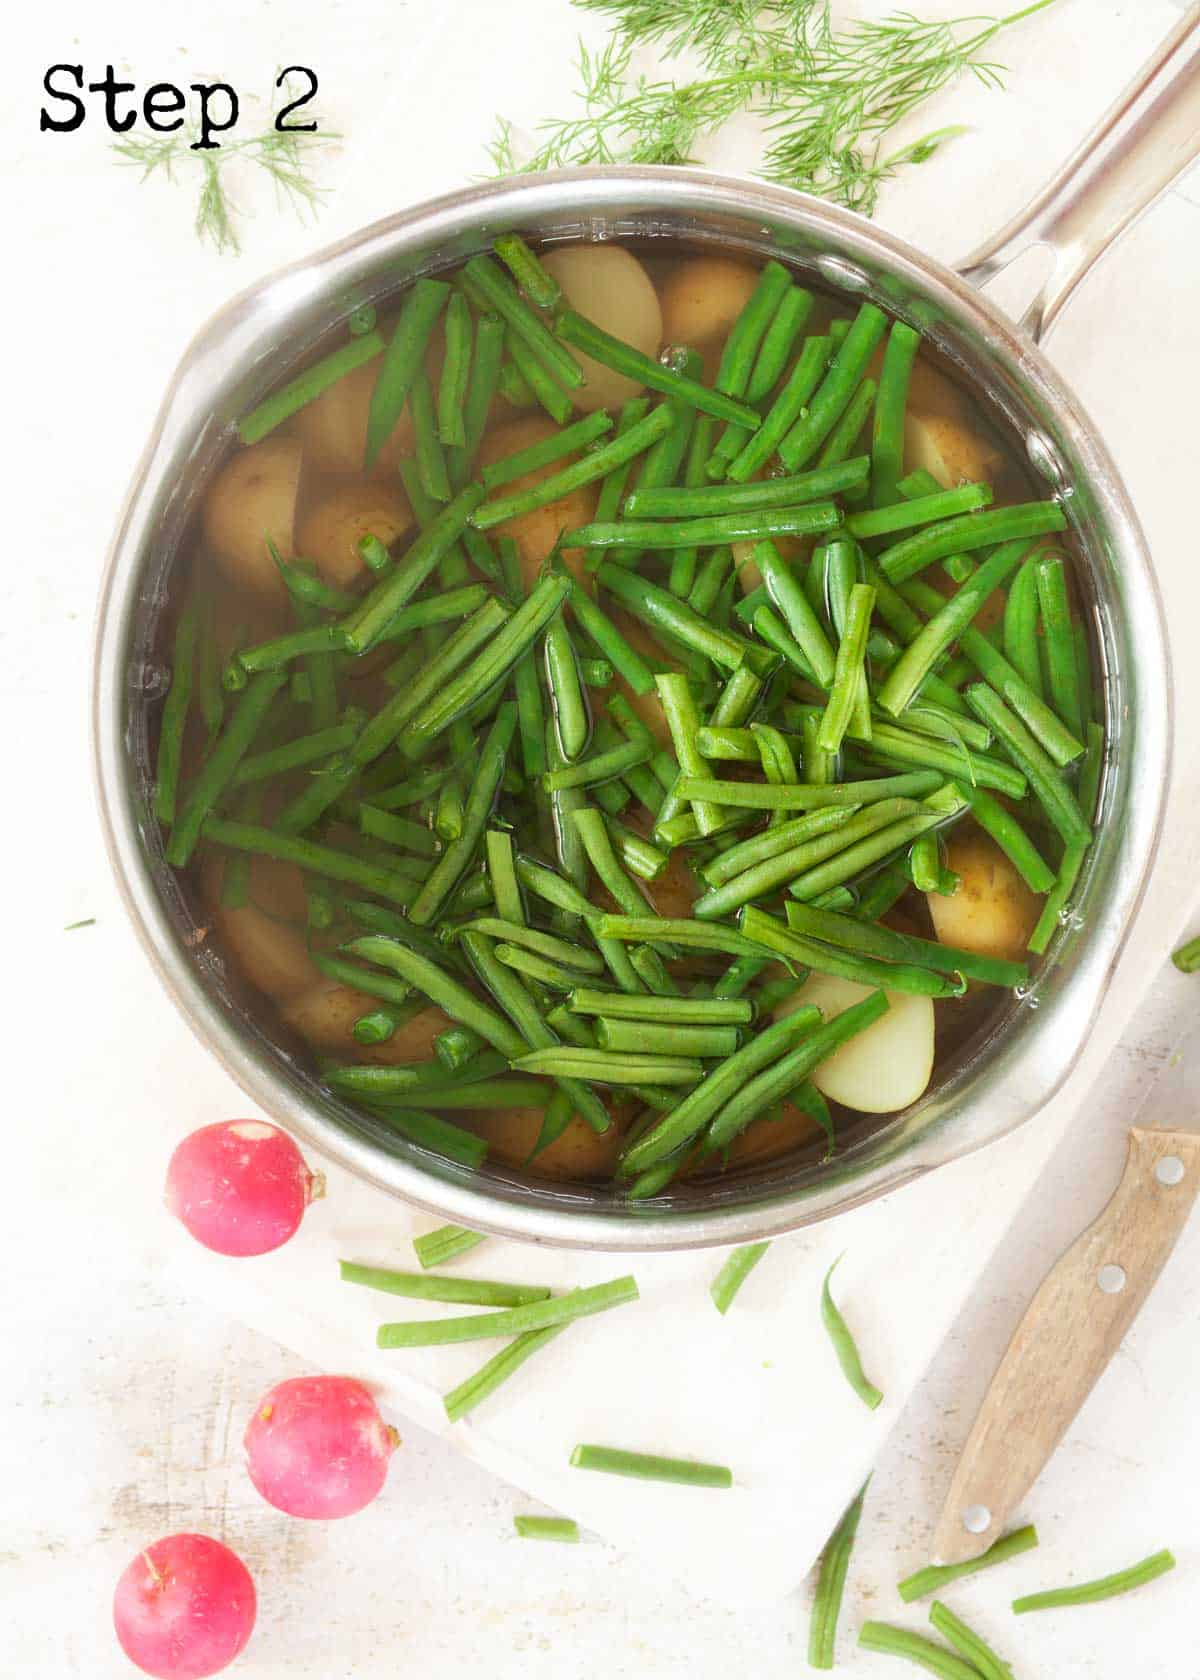 Process image - green beans added to a pan of cooked potatoes